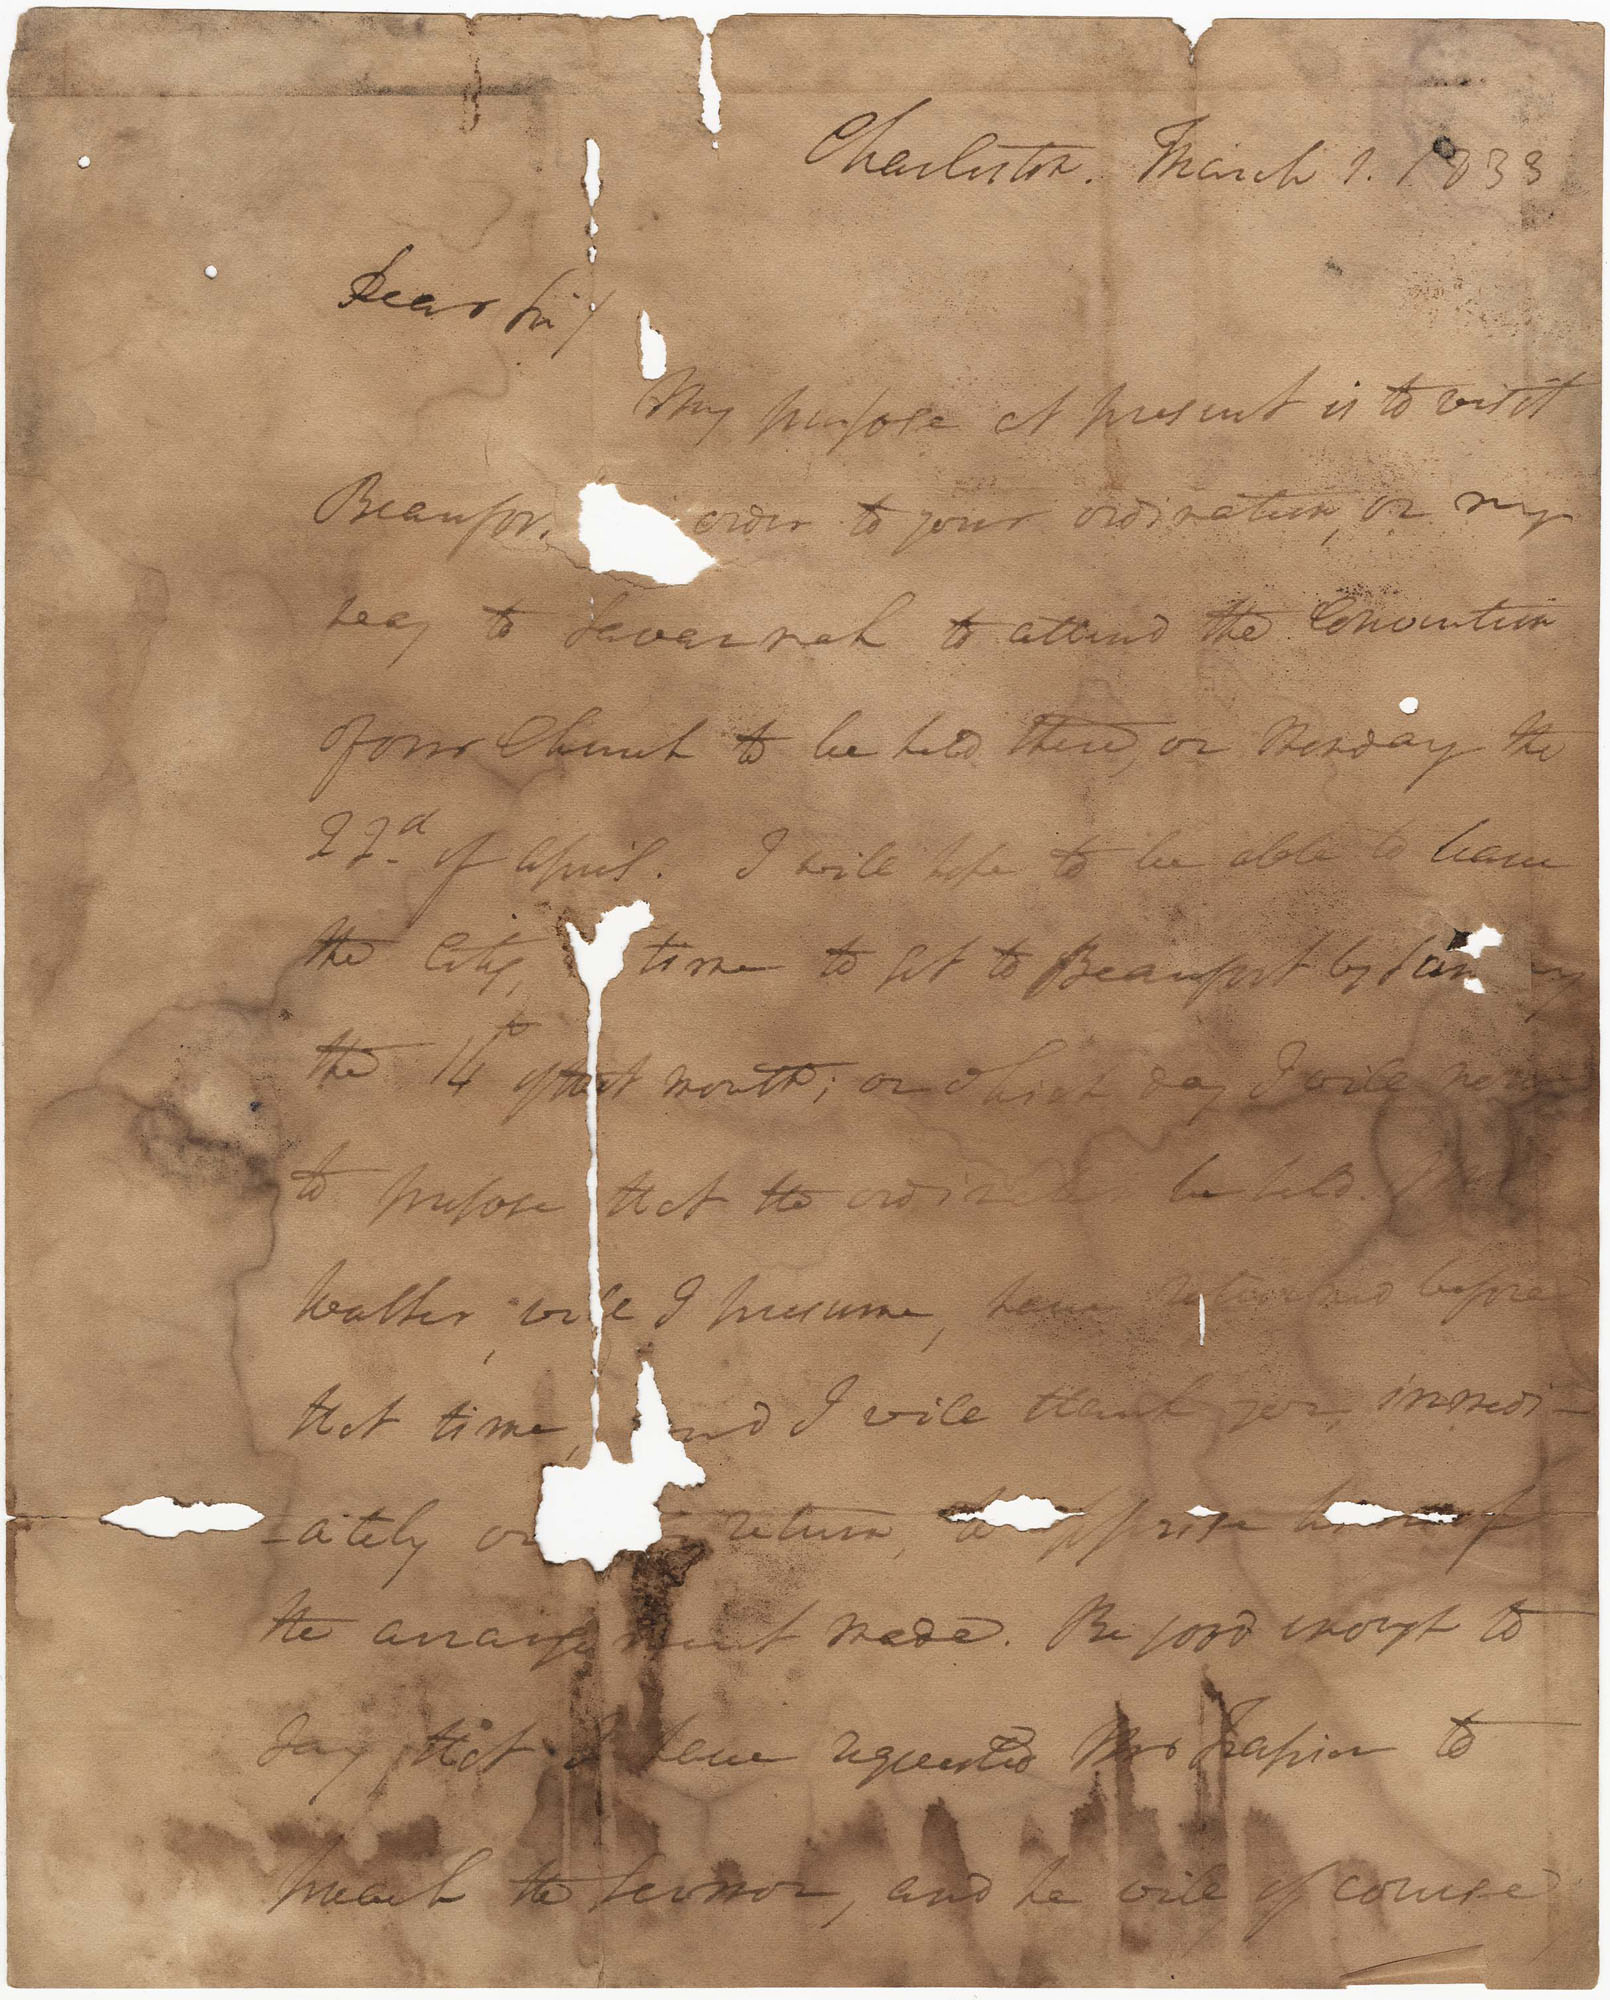 014.  Nathaniel Bowen to William H. W. Barnwell -- March 1, 1833